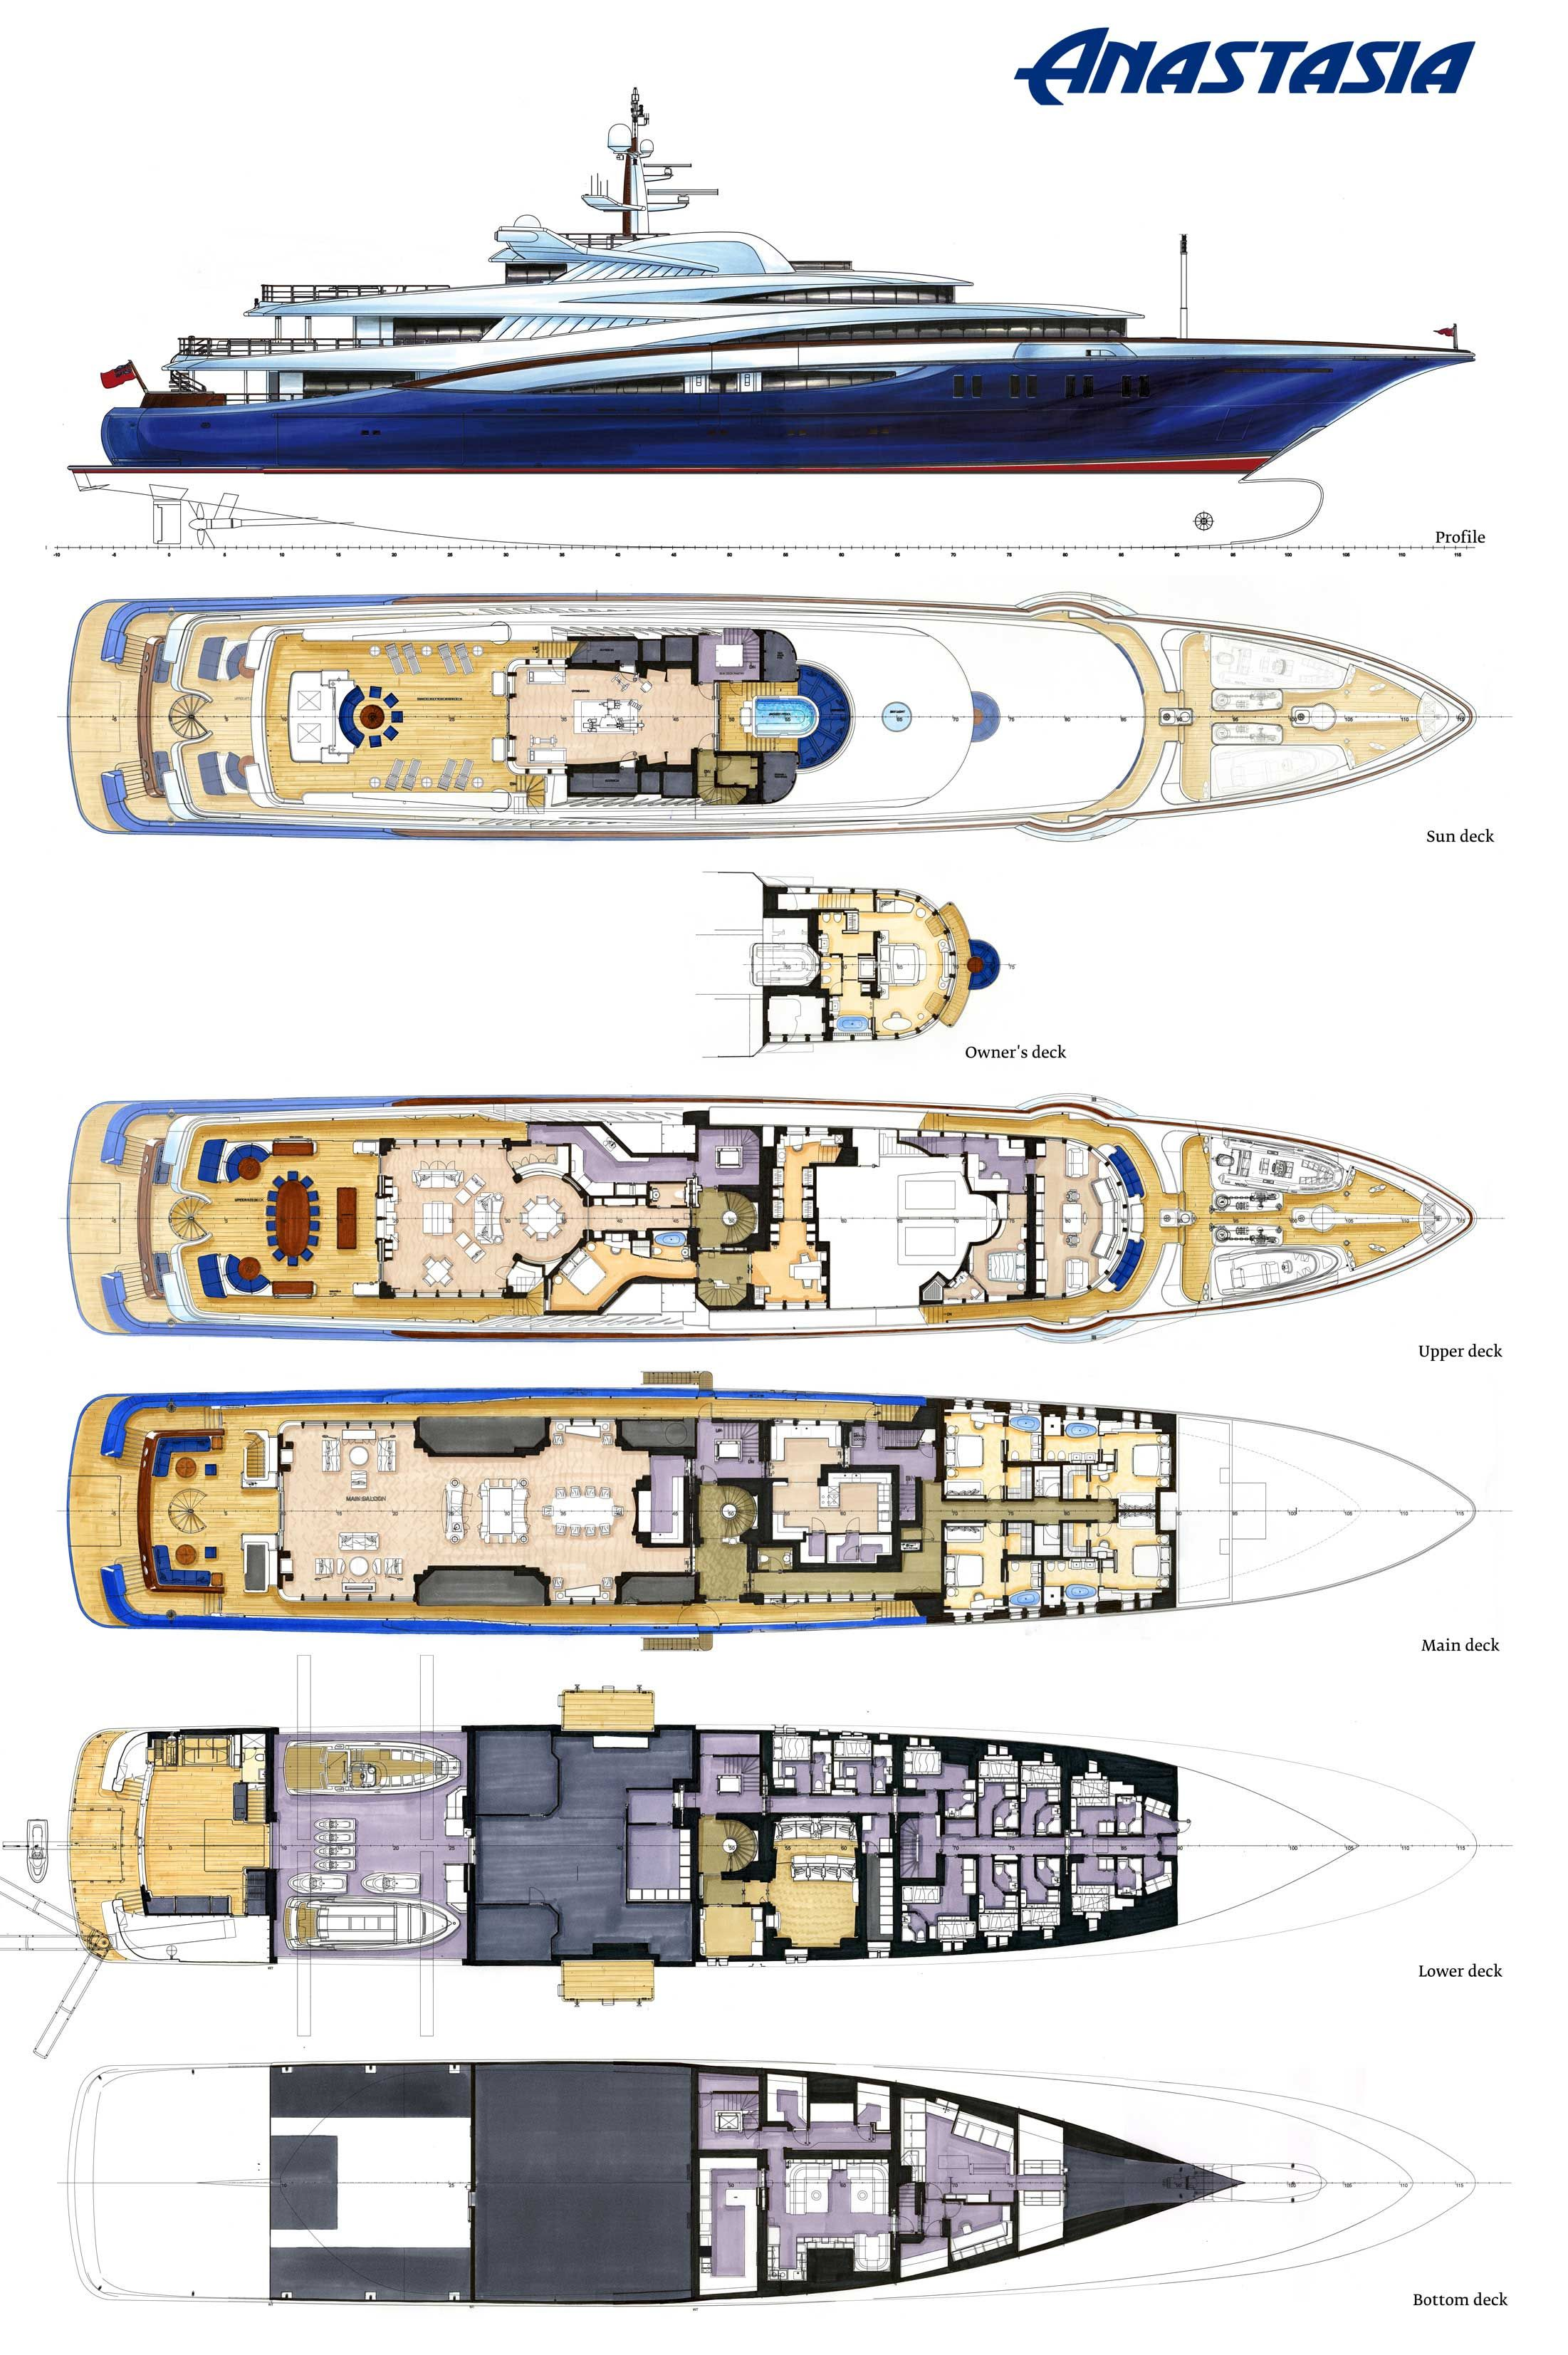 Anastasia layout plans luxury yacht ideas pinterest for General motors company profile